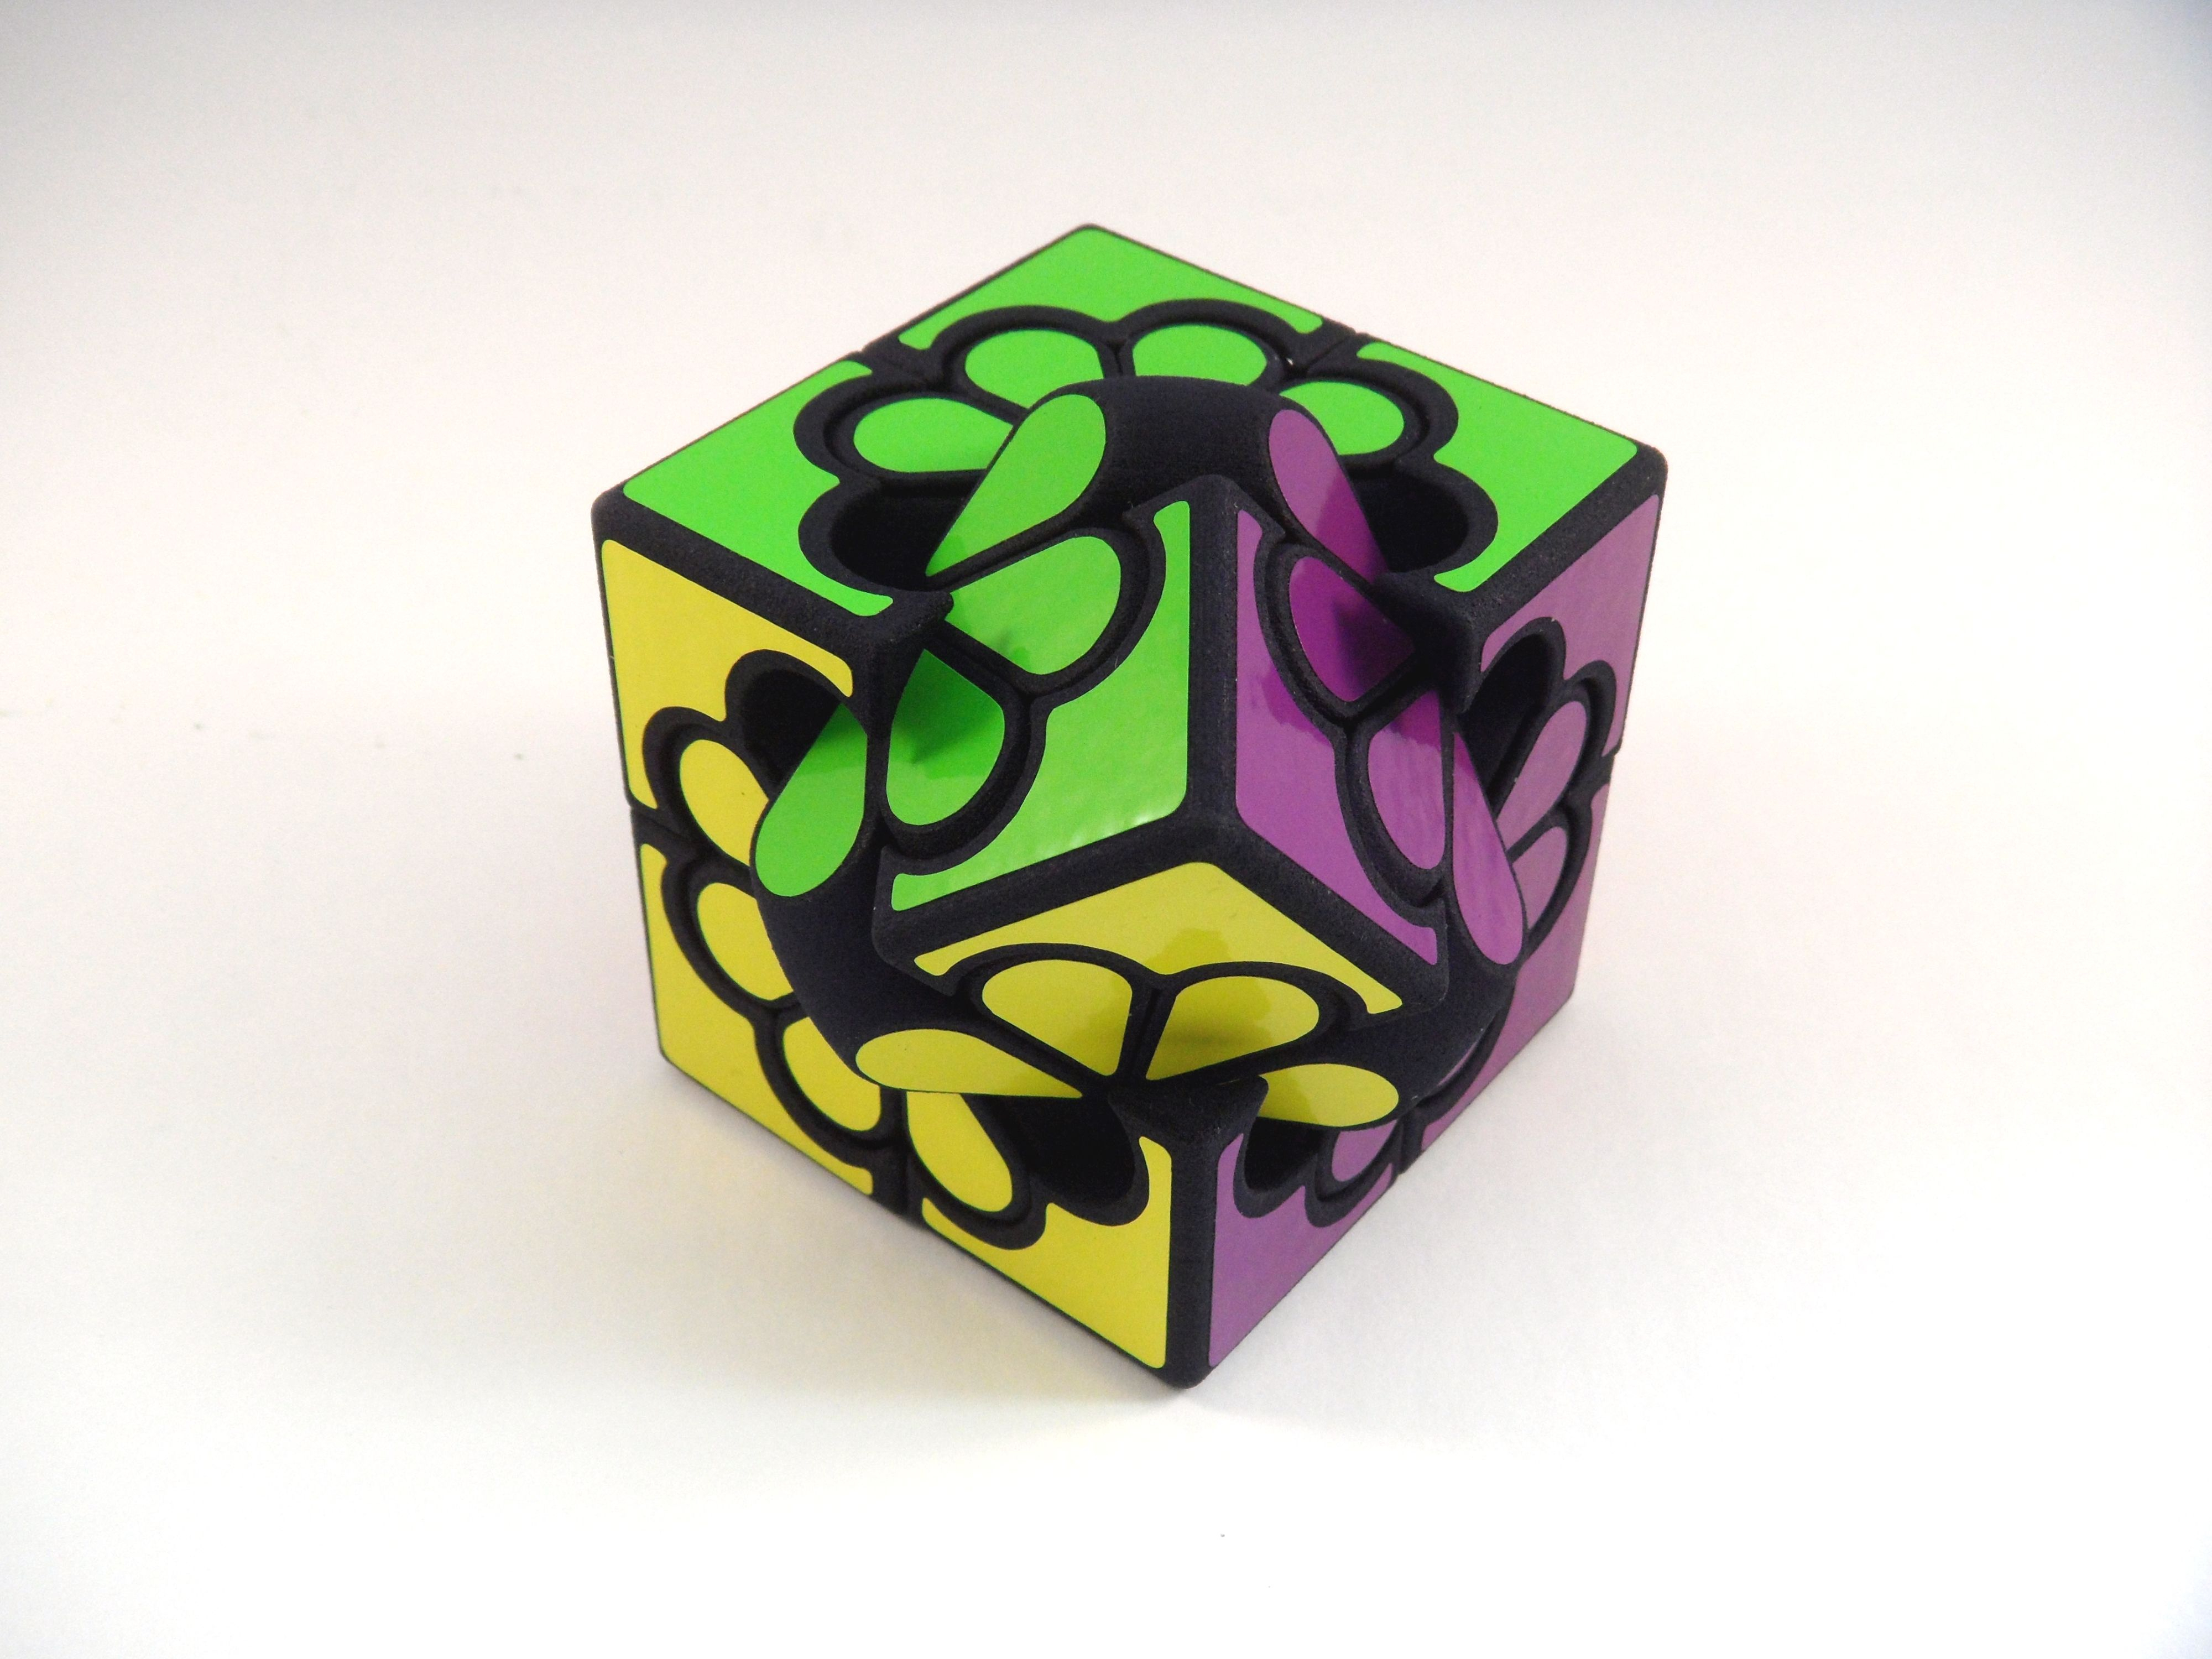 3D Printing Puzzles In Polyamide | 3D Printing Blog | I.materialise - Puzzle Print Vinyl